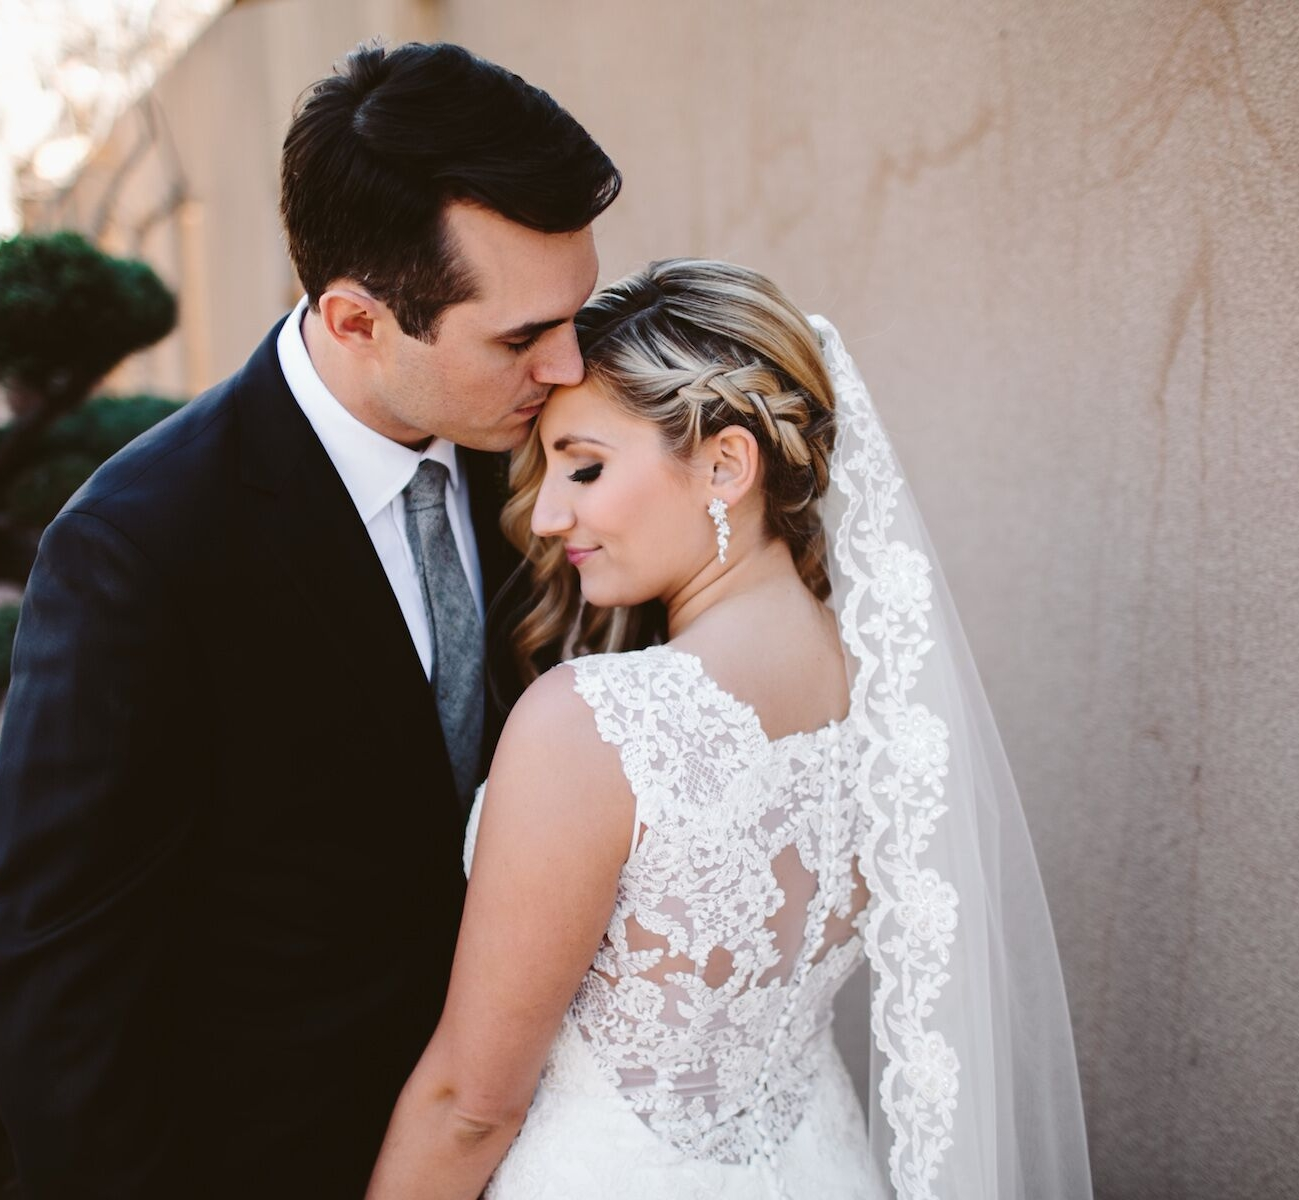 Sequined Lace Veil - $57